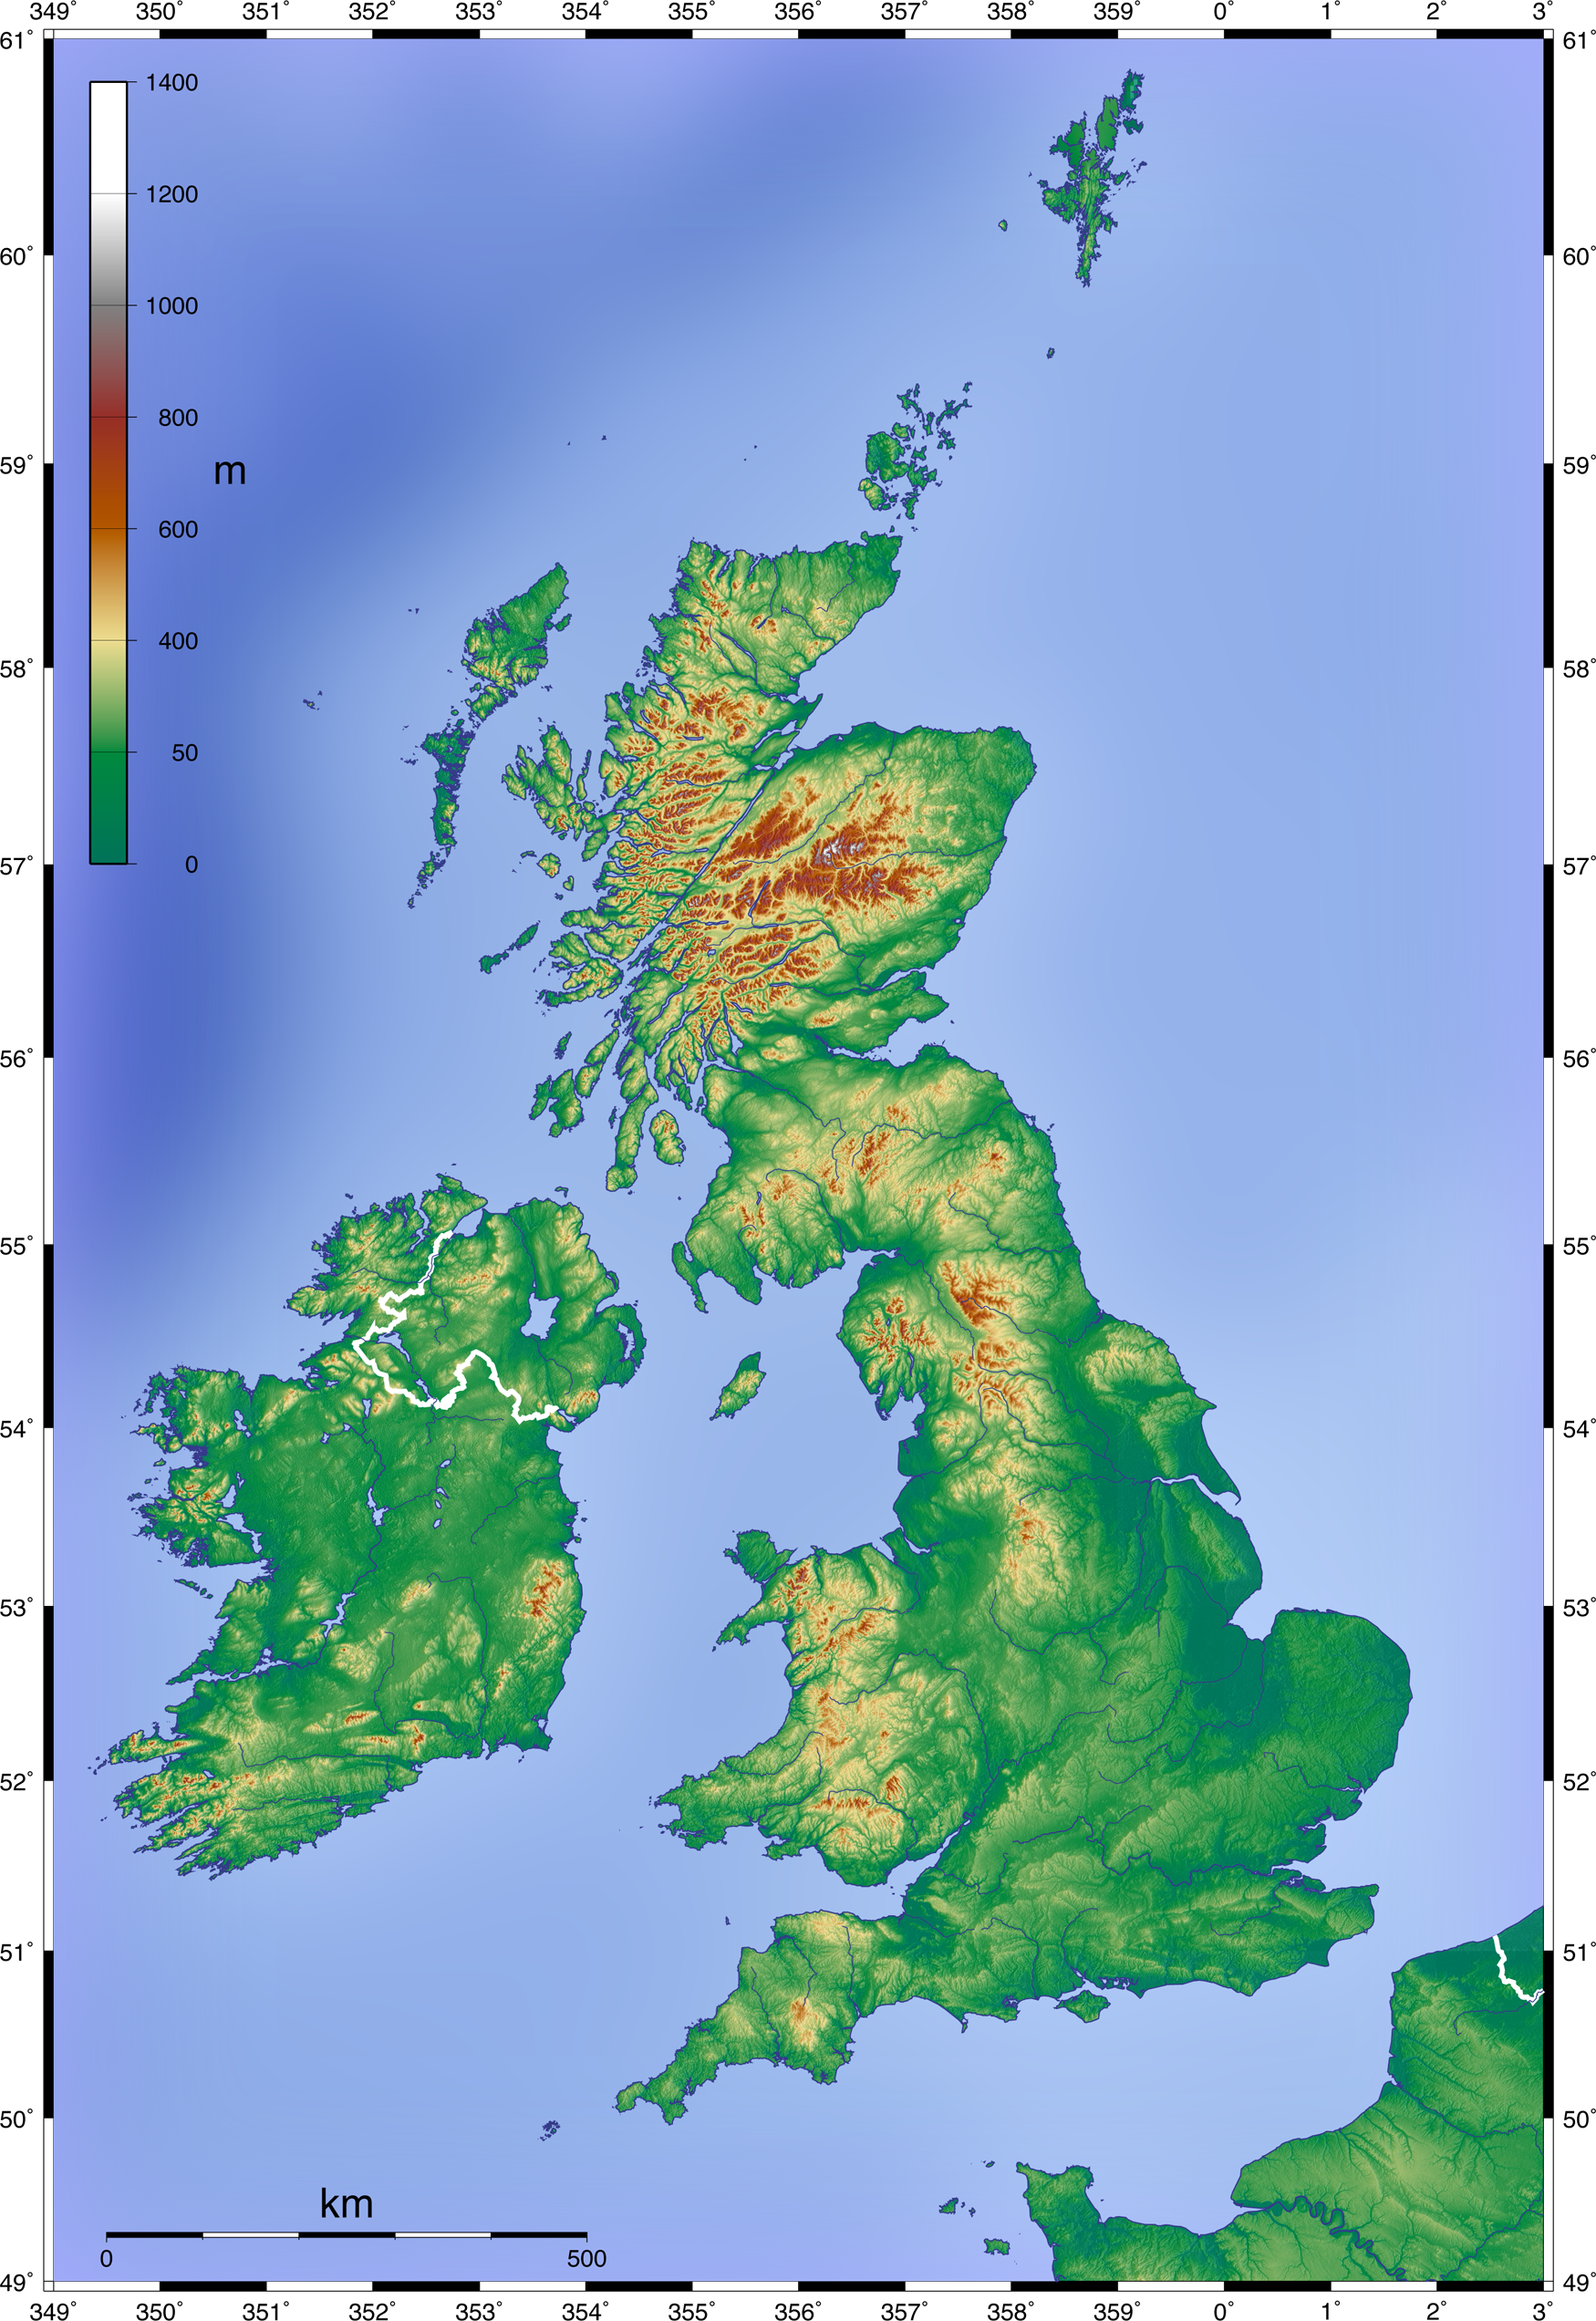 Topographic Maps Uk File:Topographic Map of the UK   Blank.png   Wikimedia Commons Topographic Maps Uk